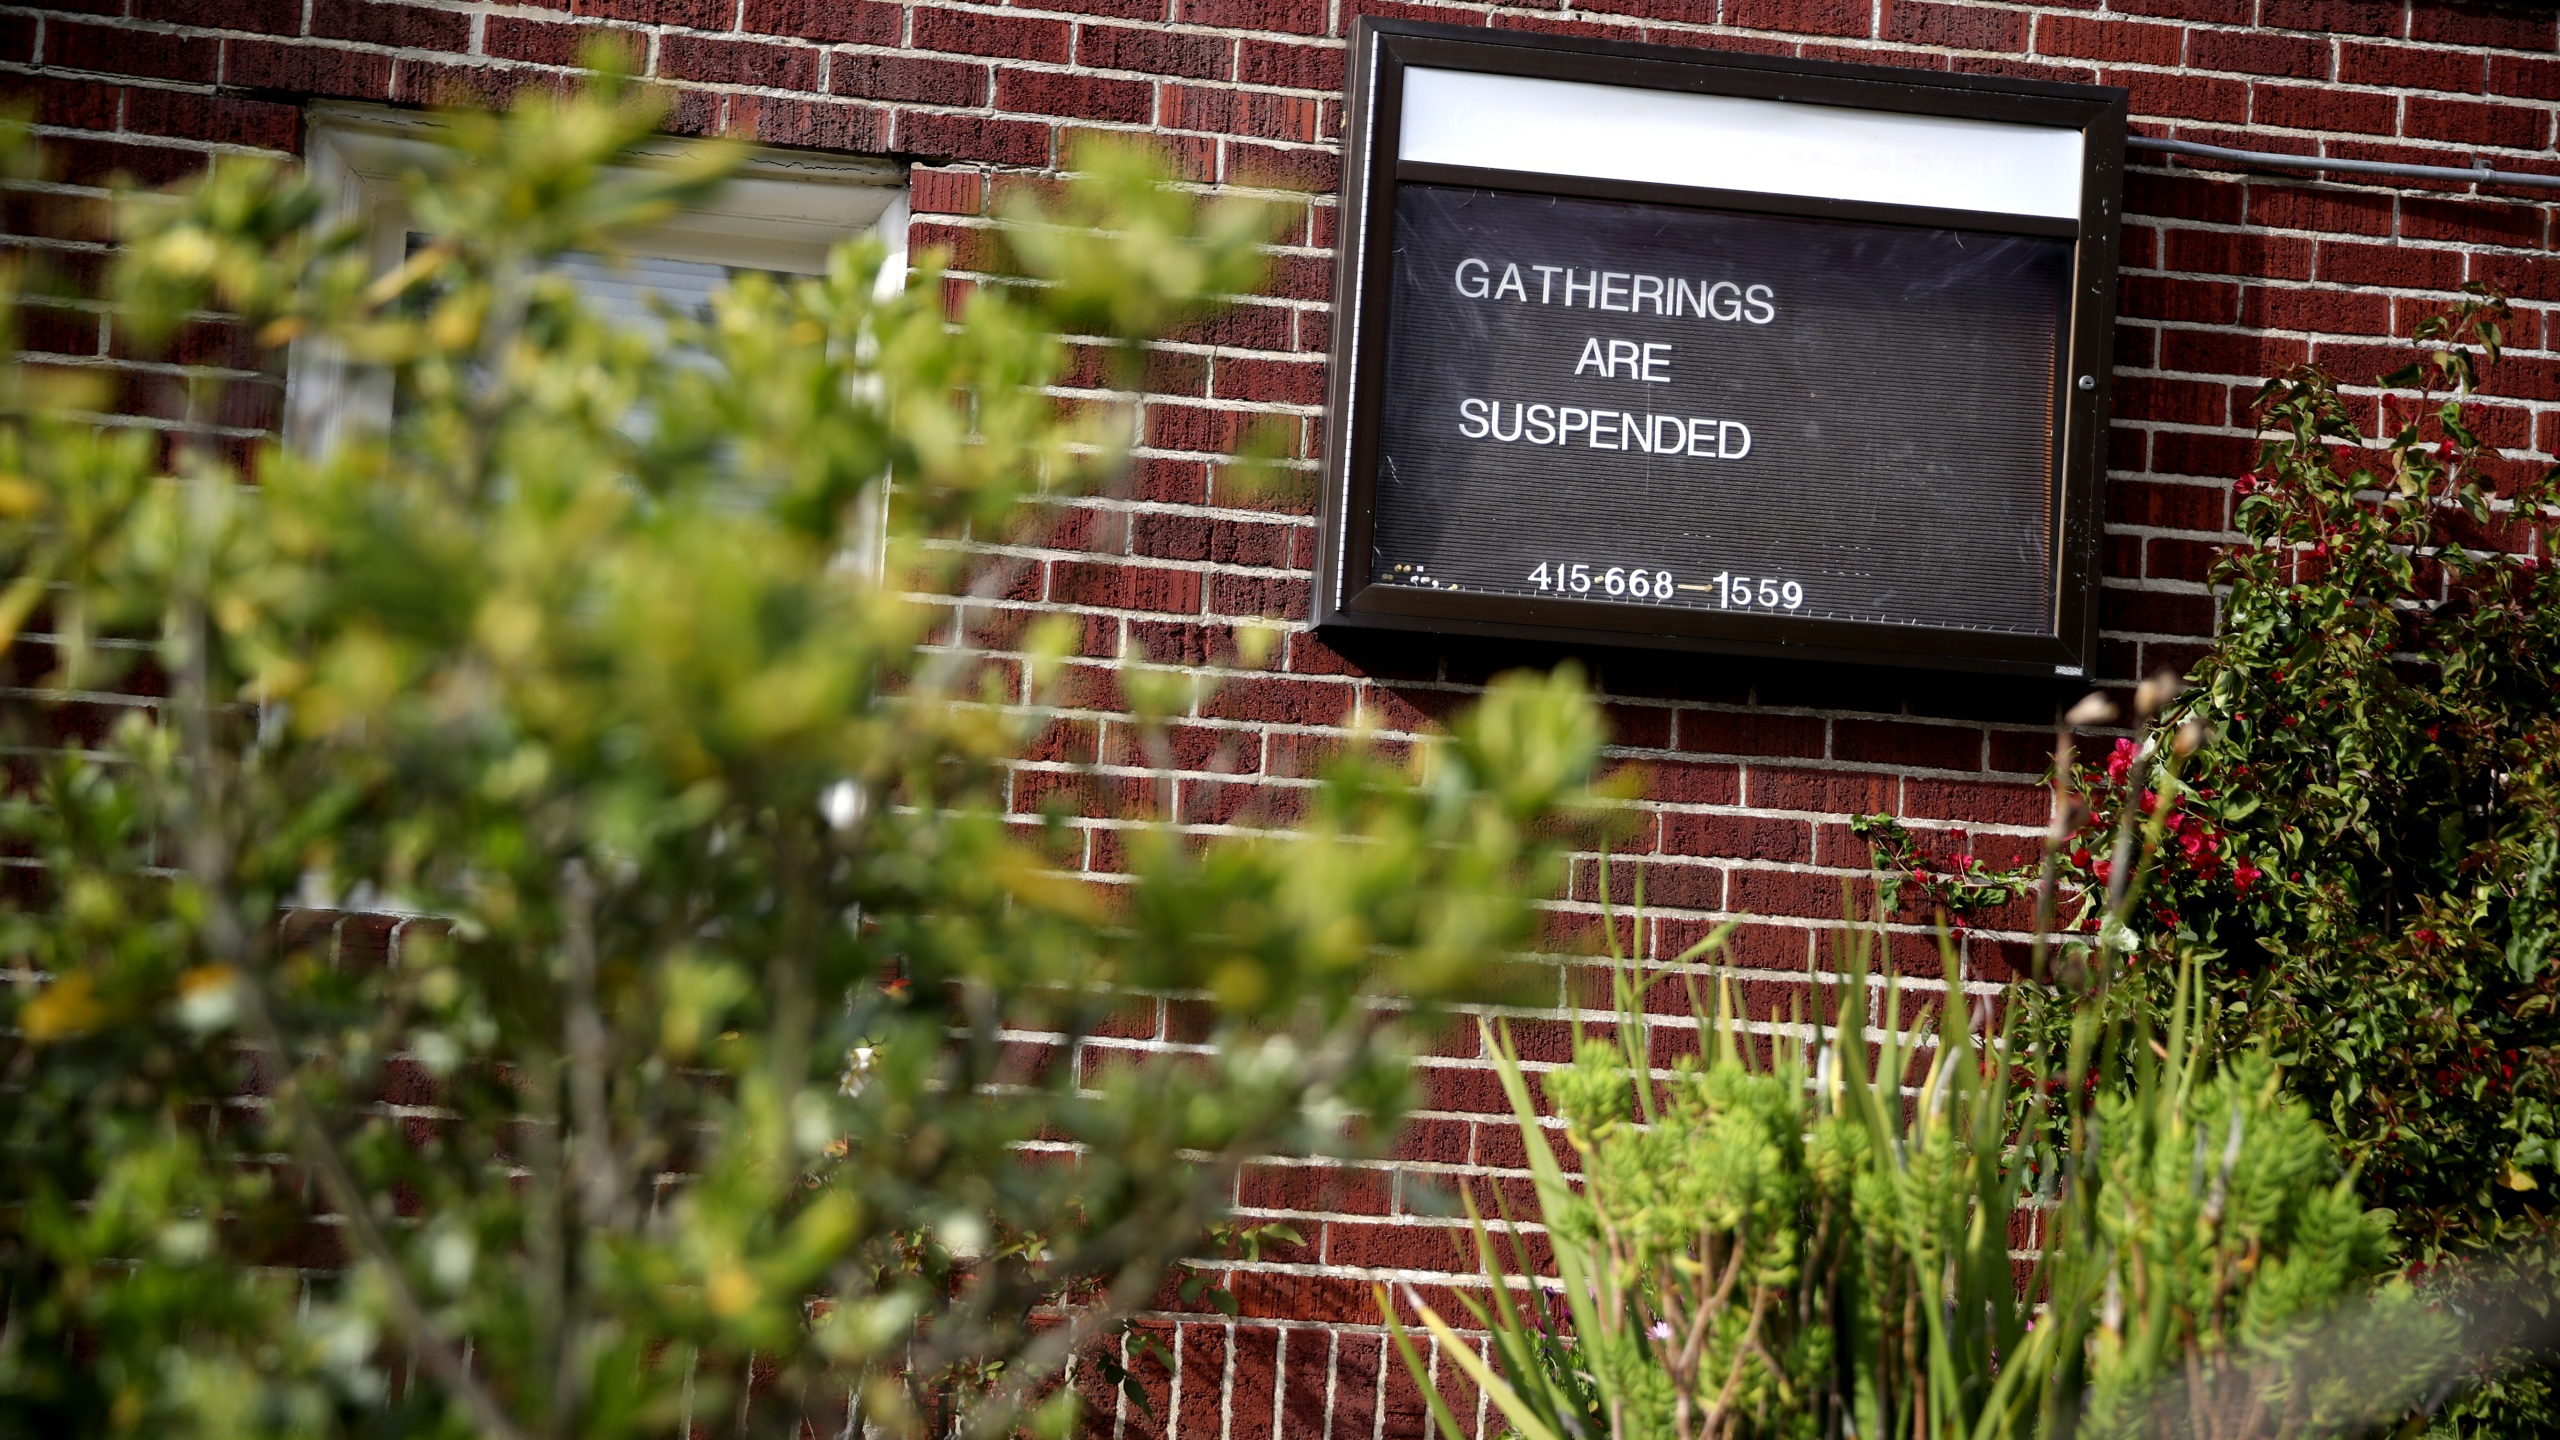 A sign announcing that gatherings are suspended is posted in front of a church in San Francisco on March 17, 2020. (Credit: Justin Sullivan / Getty Images)